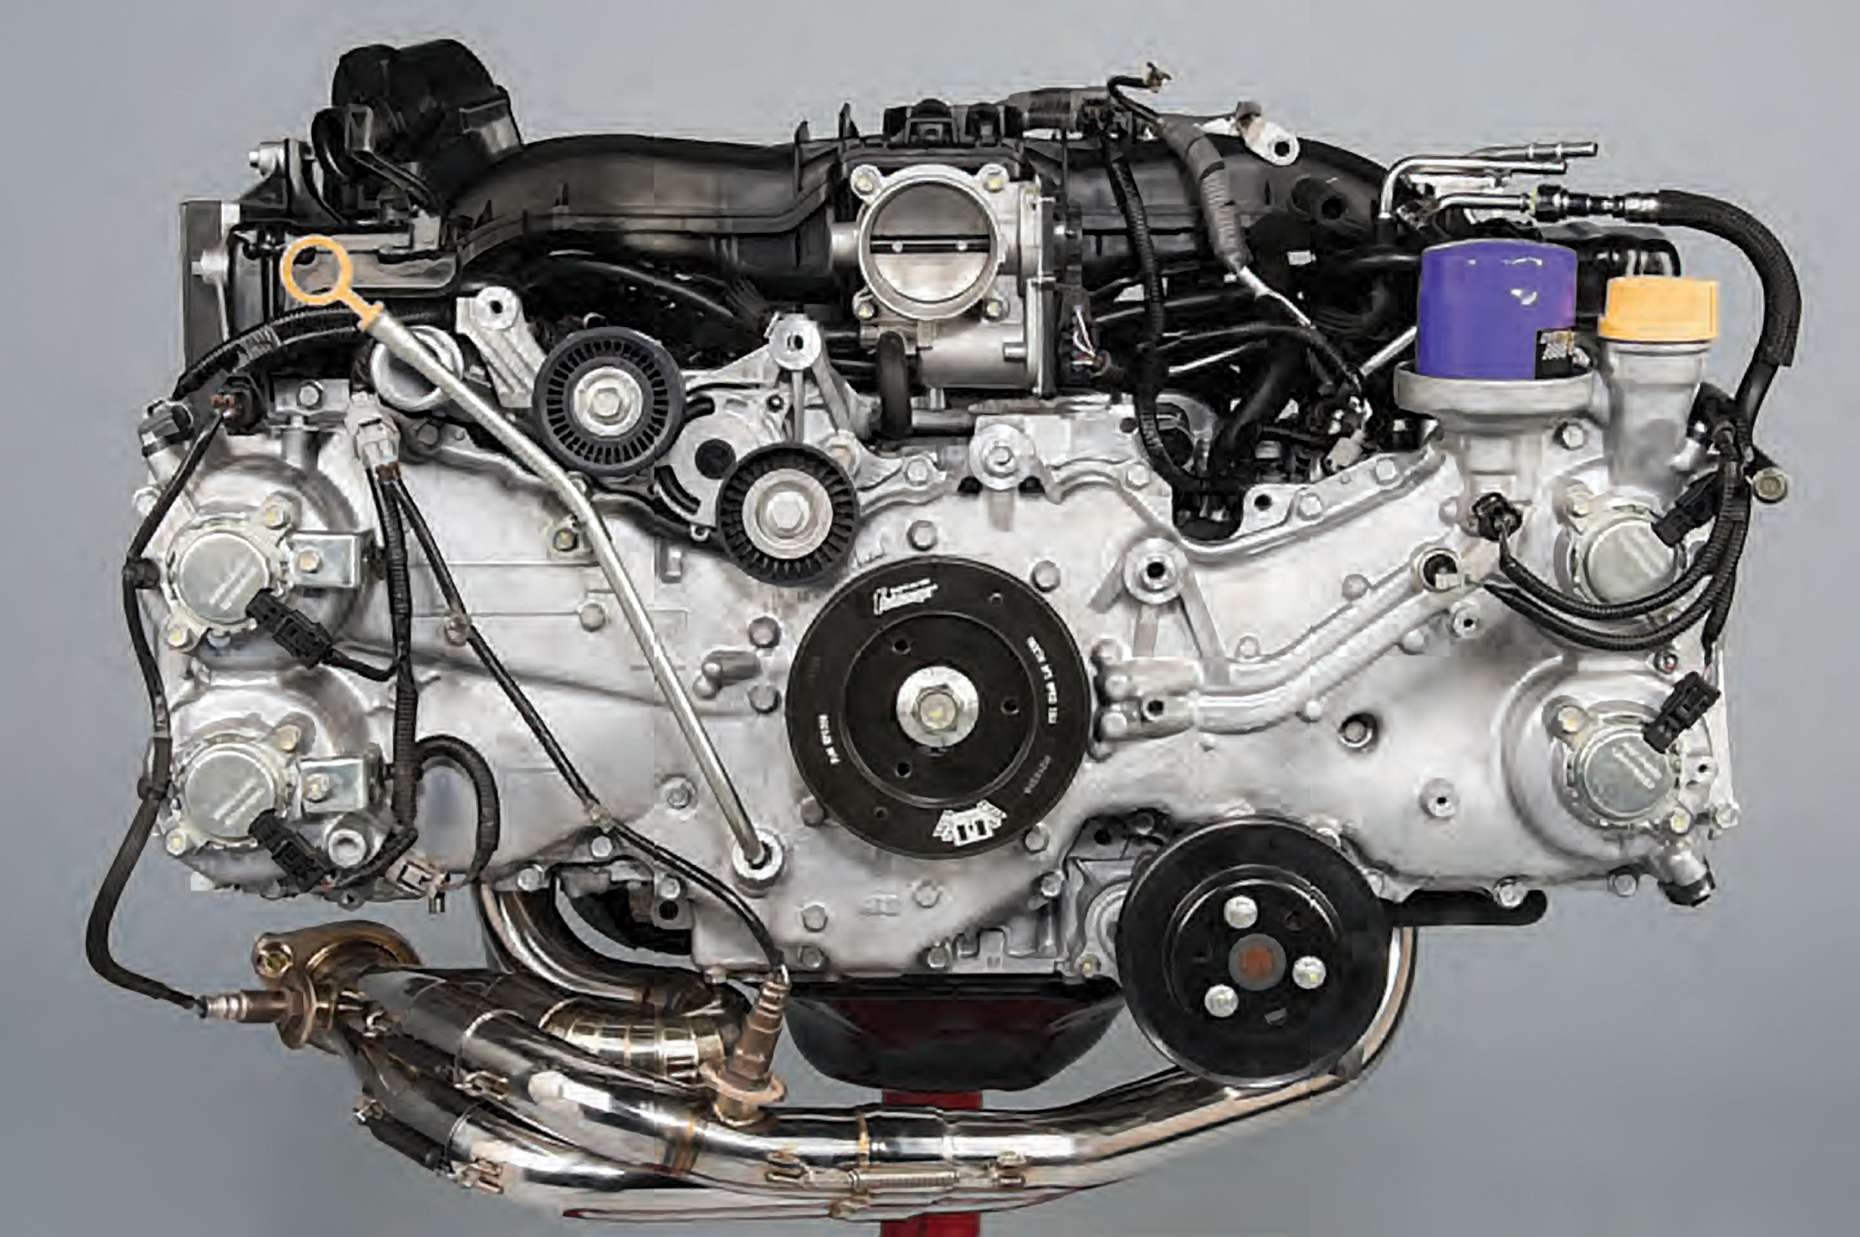 Tremendous L A Sleeves 500Whp Brz Build L A Sleeve Wiring Digital Resources Sapebecompassionincorg